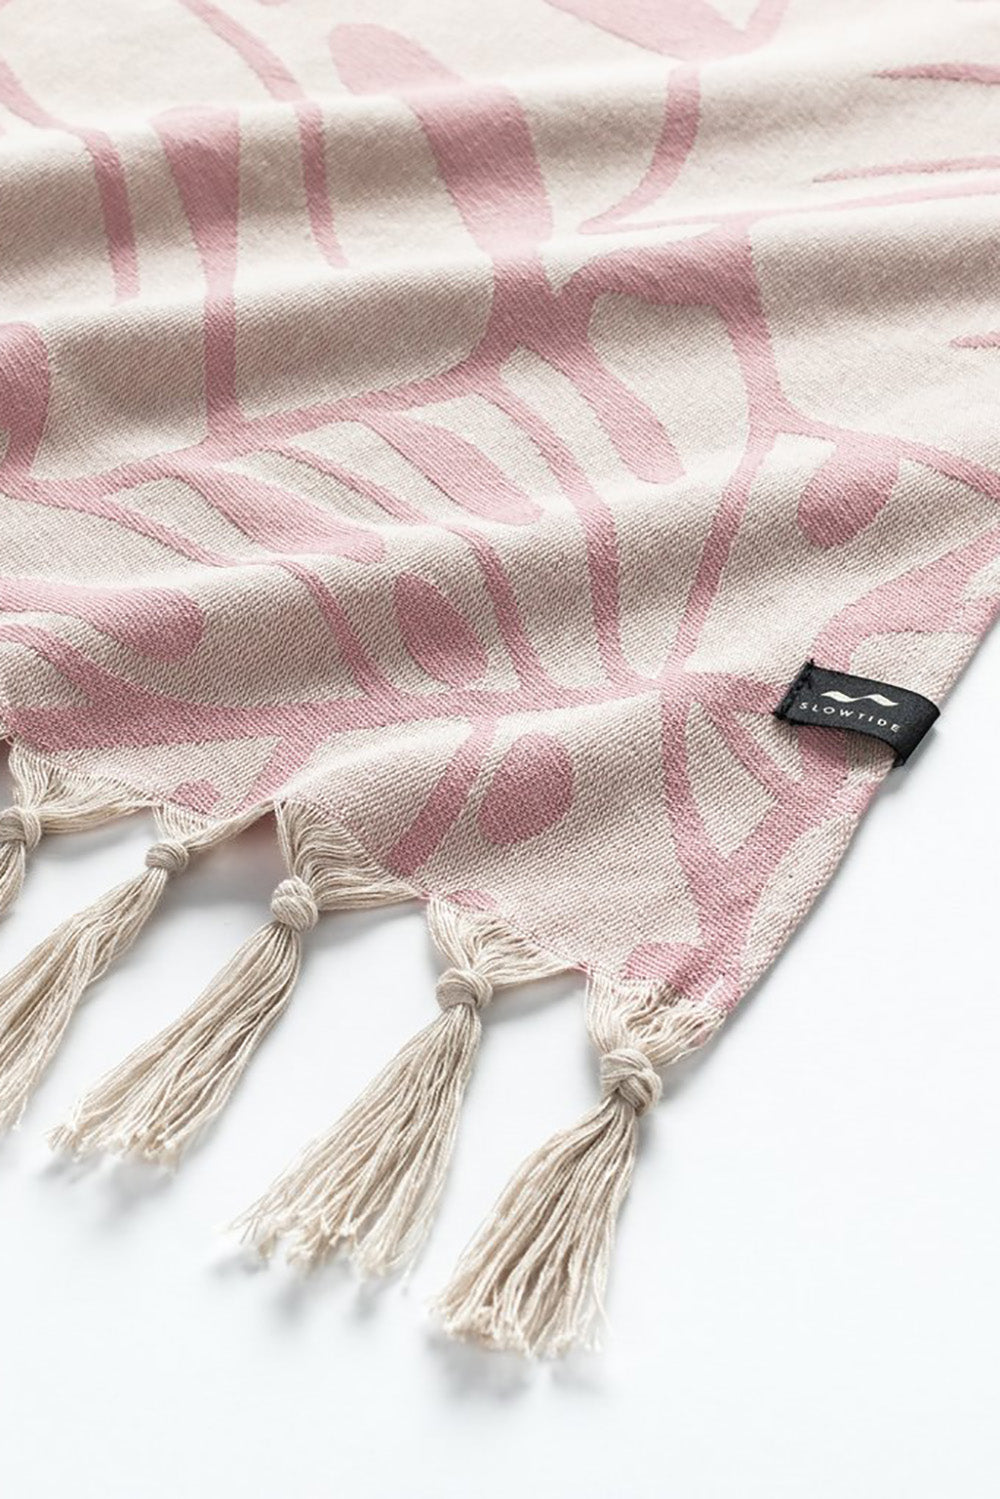 Slowtide Turkish Beach Towel in Tarovine Rose